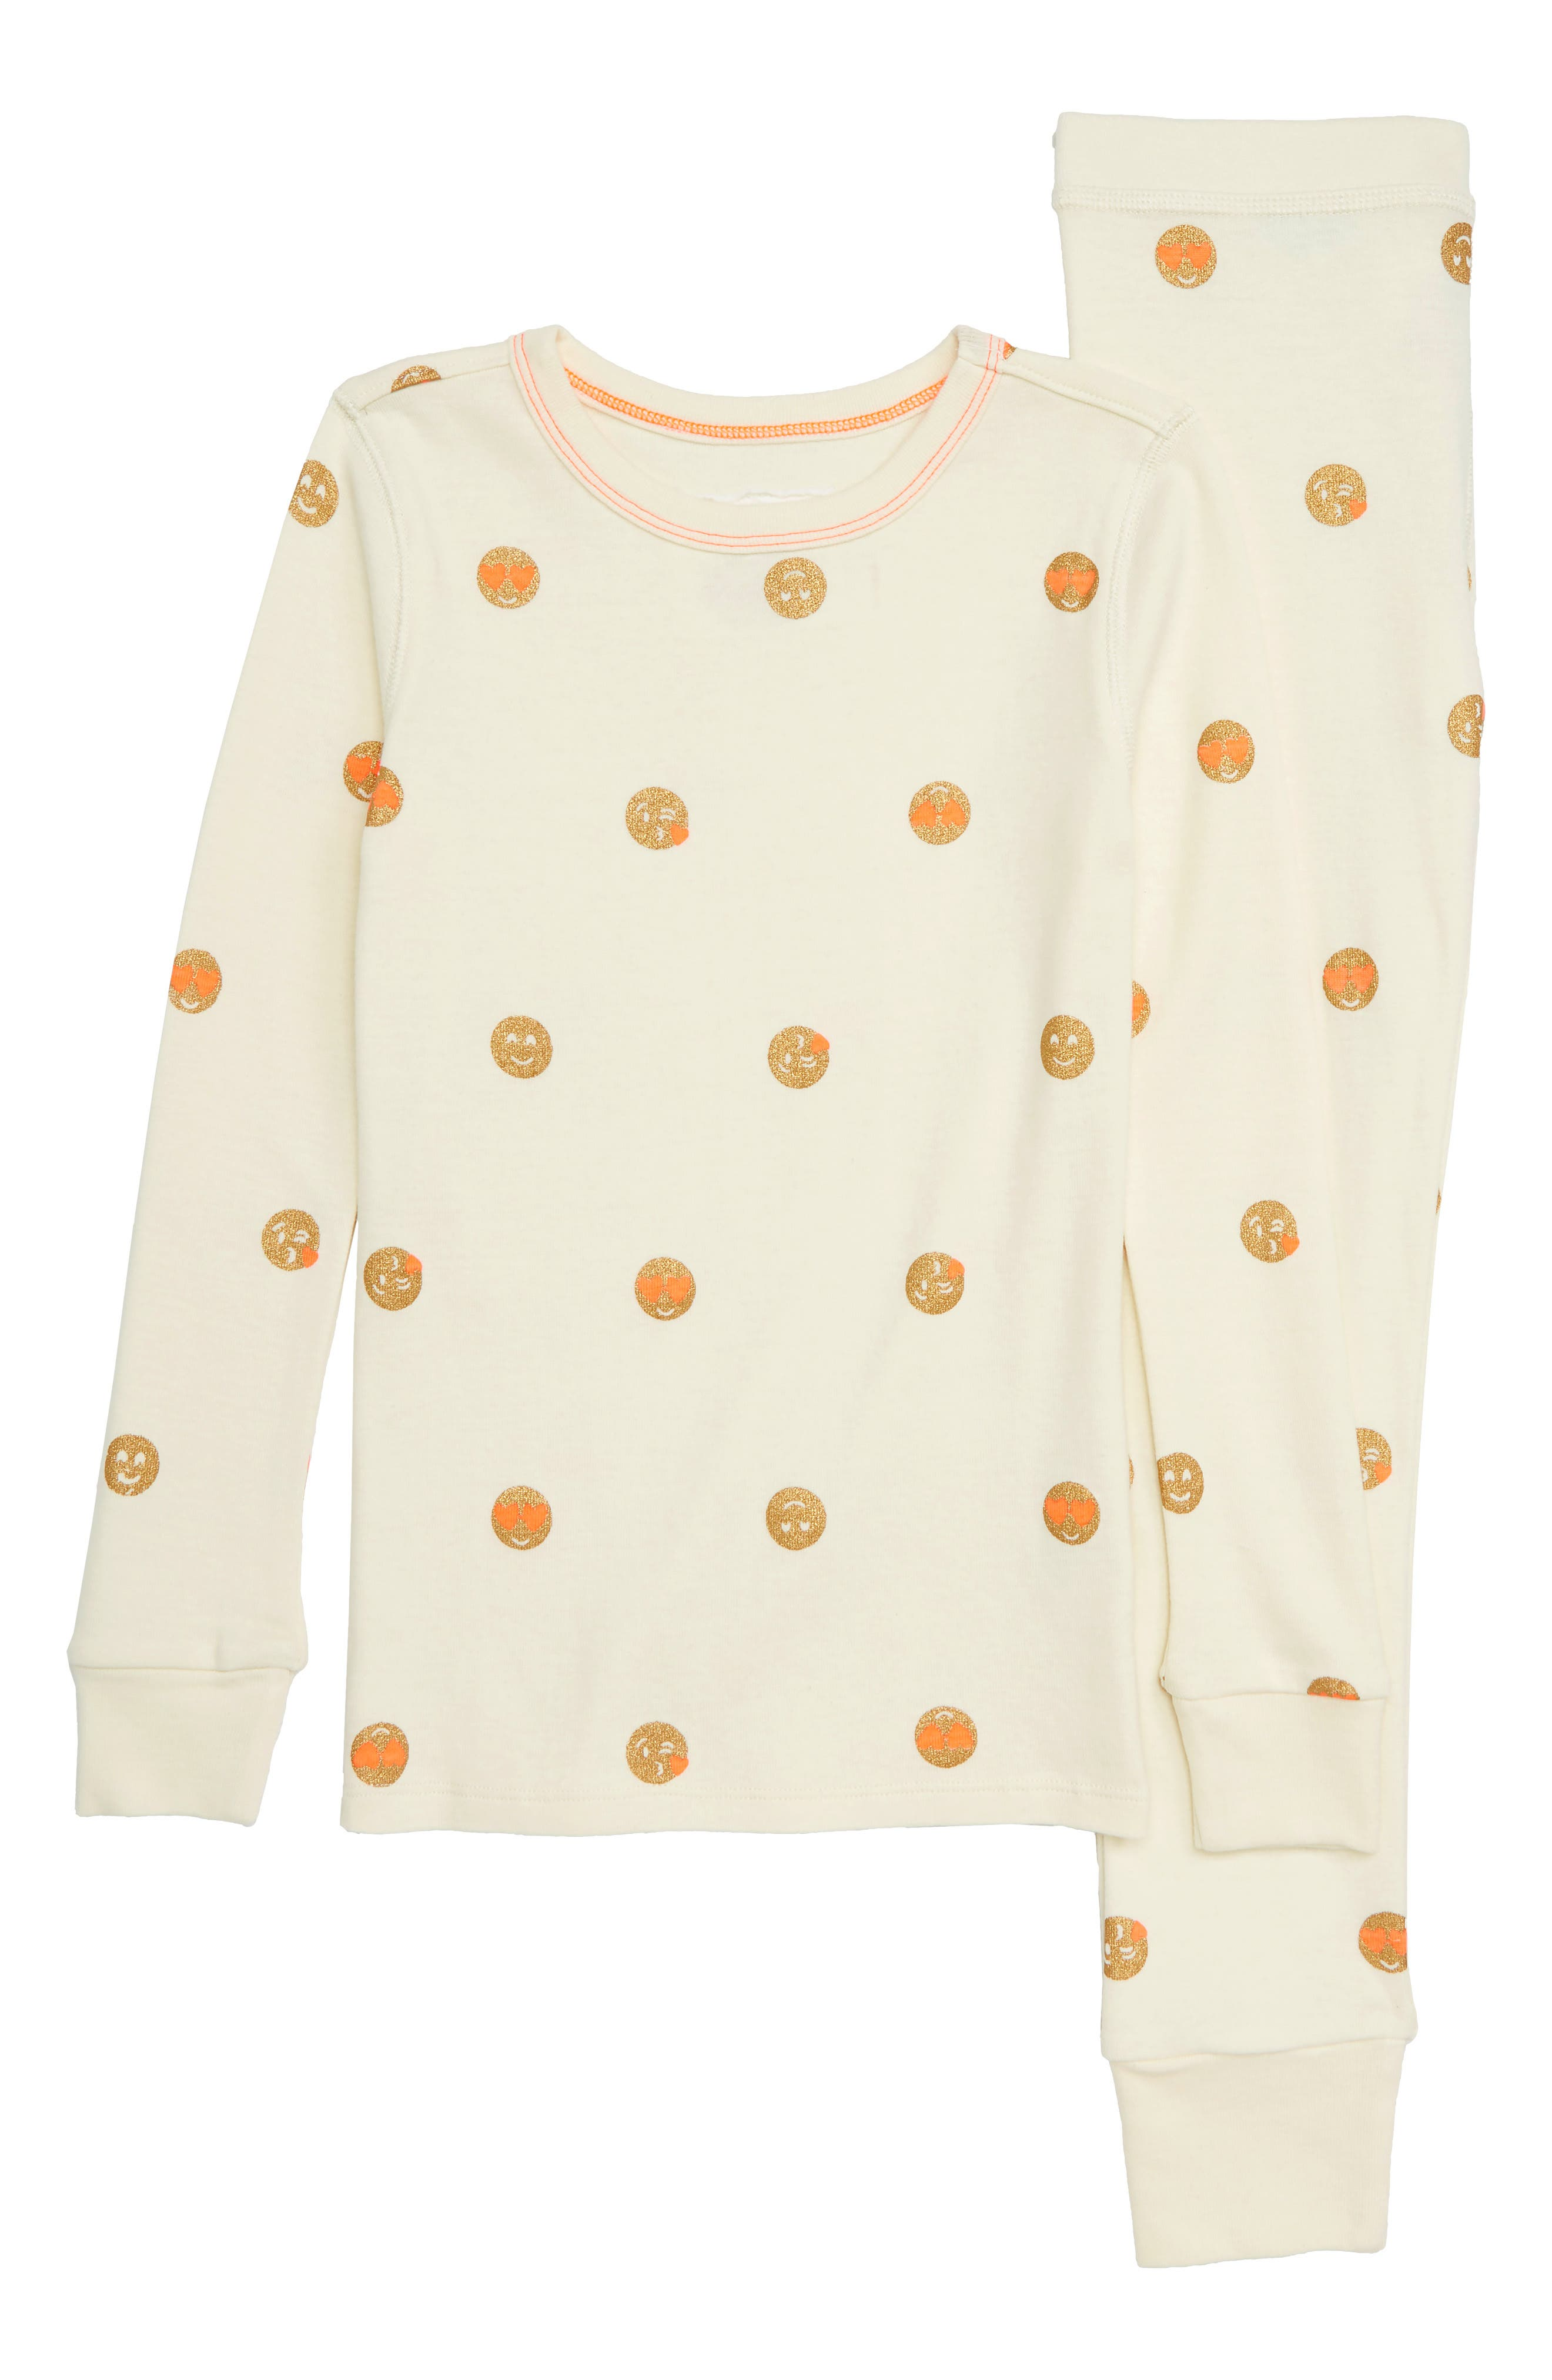 Emoji Fitted Two-Piece Pajamas,                         Main,                         color, IVORY GOLD PERSIMMON